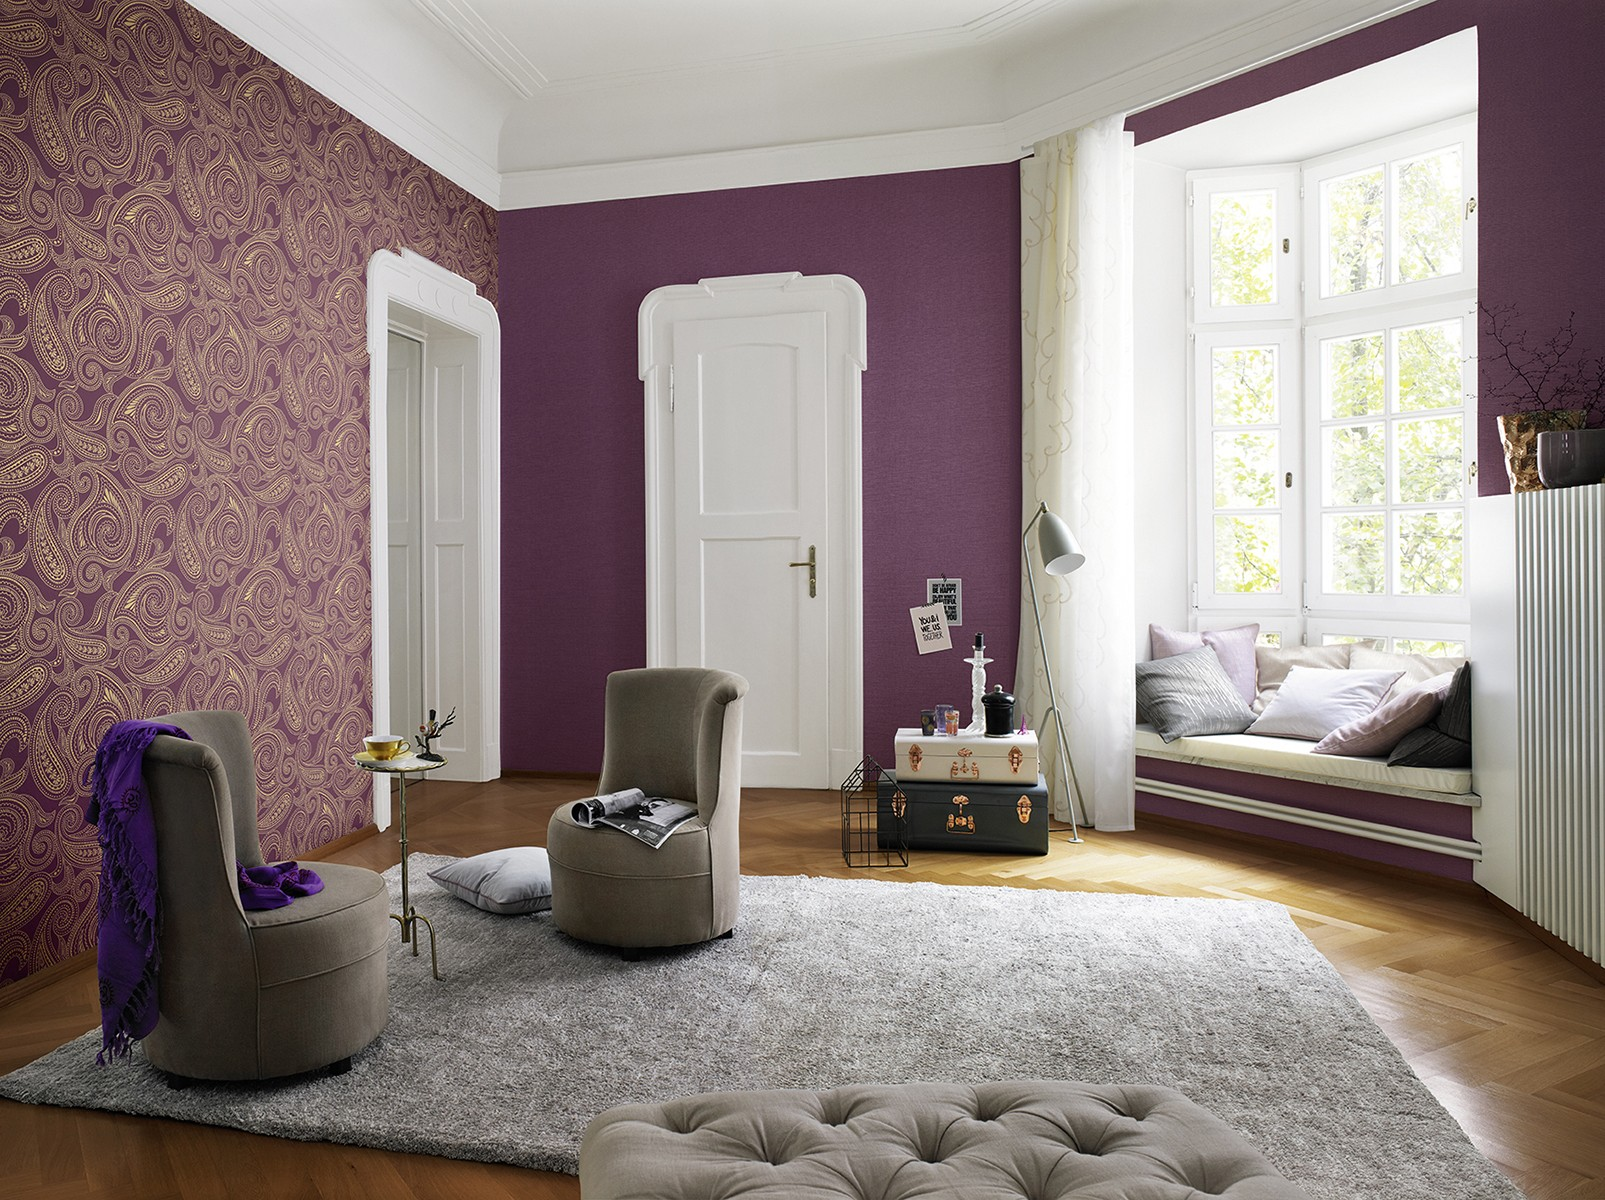 B b home passion carpets reinkemeier rietberg trade for Bb home design